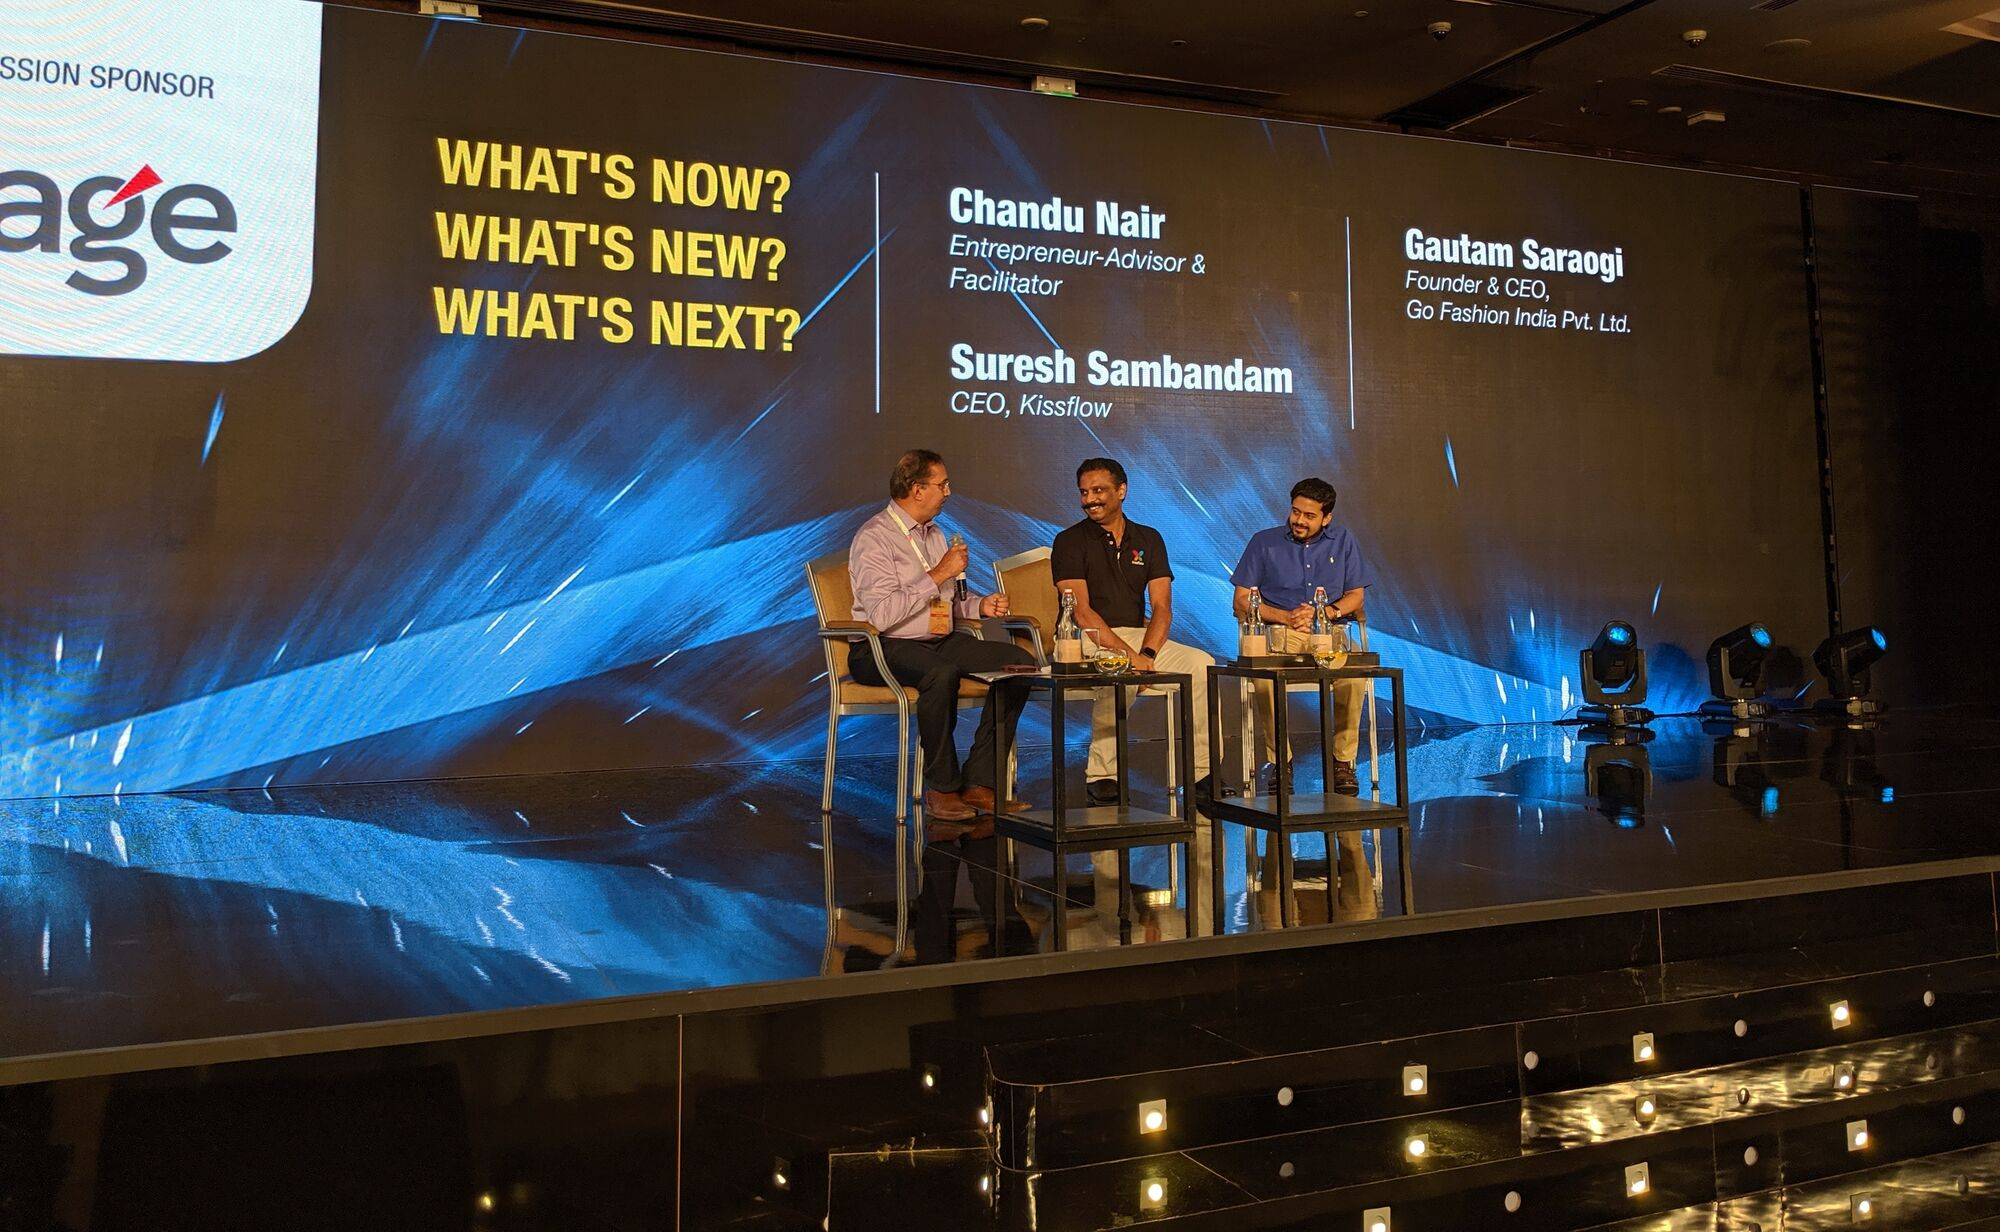 What's now, what's new, what's next? hosted by Mr Chandu Nair